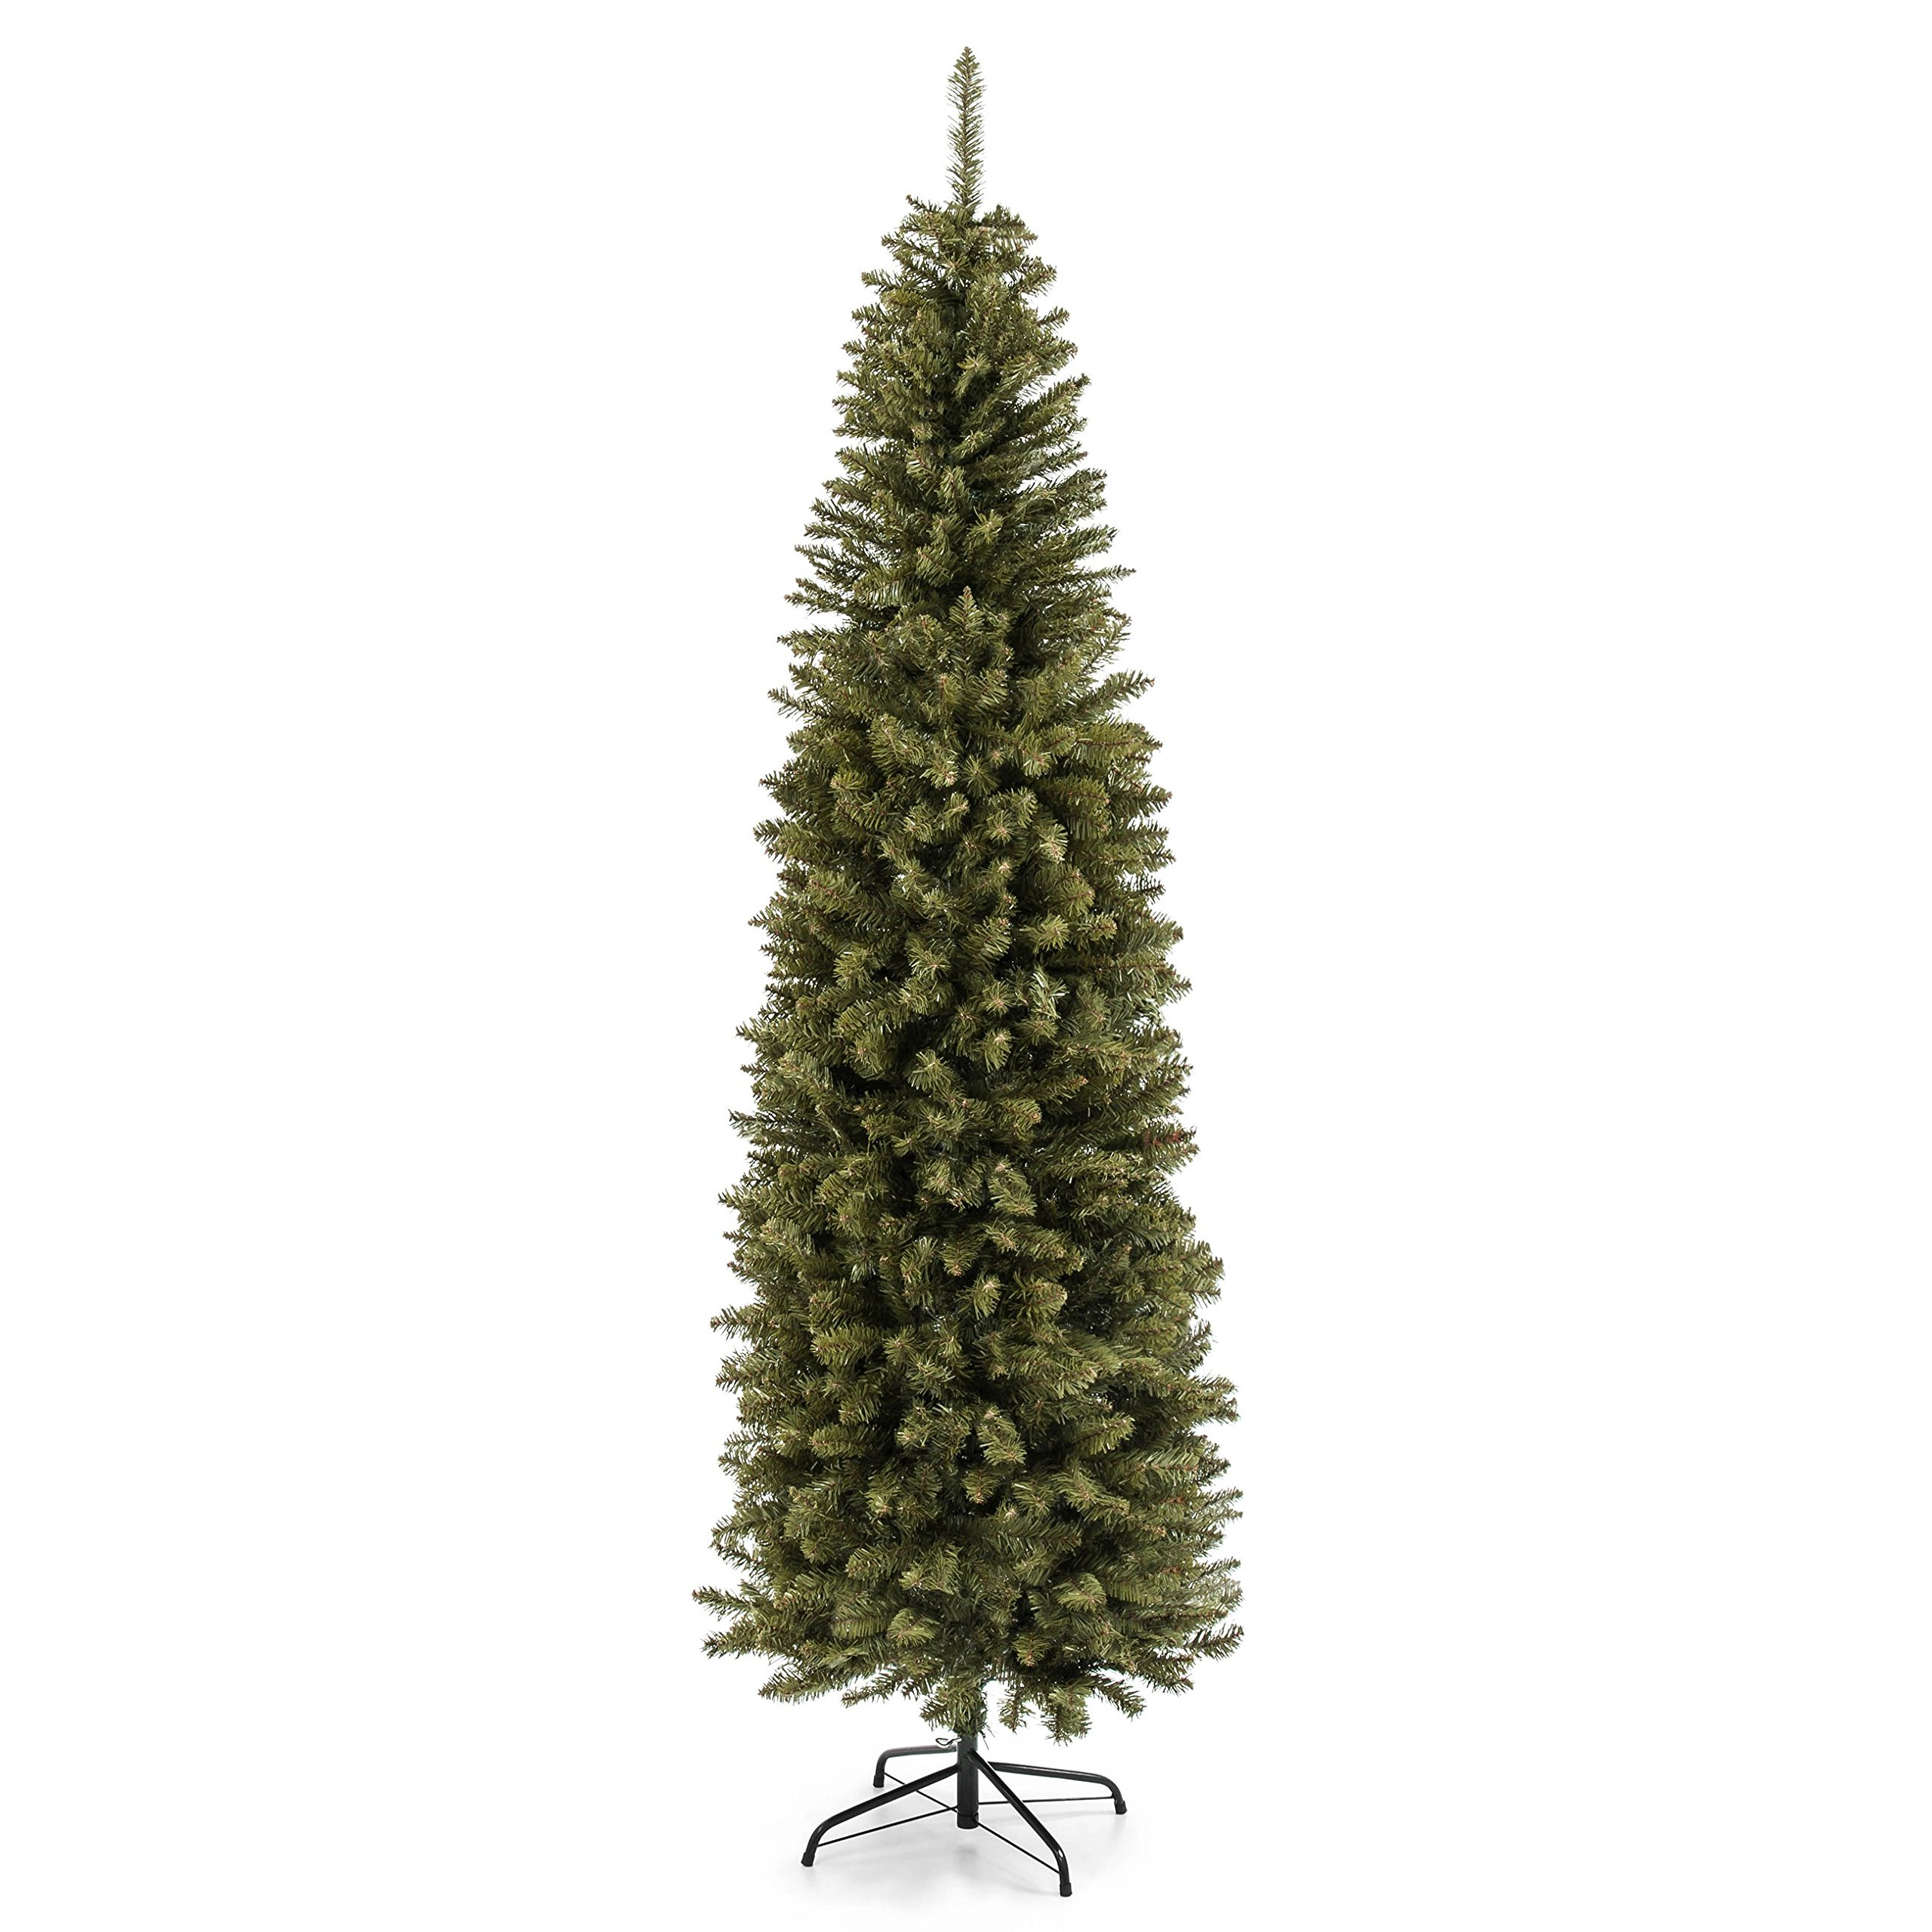 Best Choice Products 7.5 FT Premium Hinged Fir Pencil Christmas Tree w/Stand